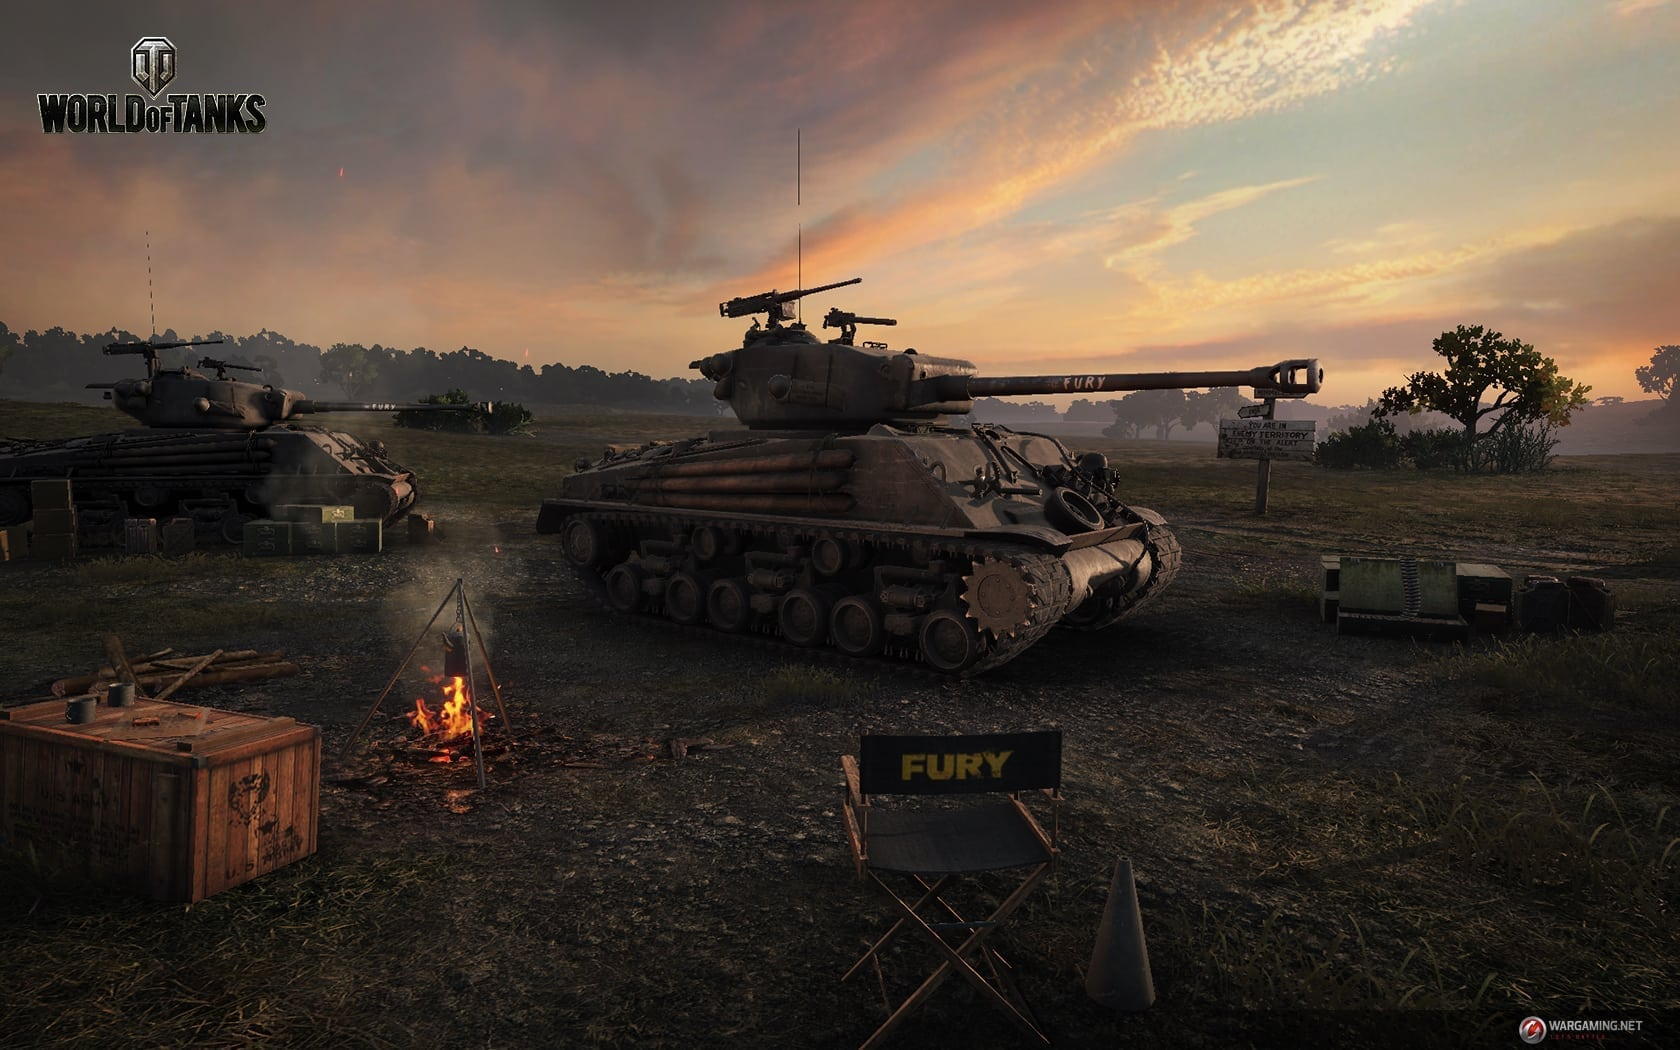 World of Tanks - Fury screenshot 1